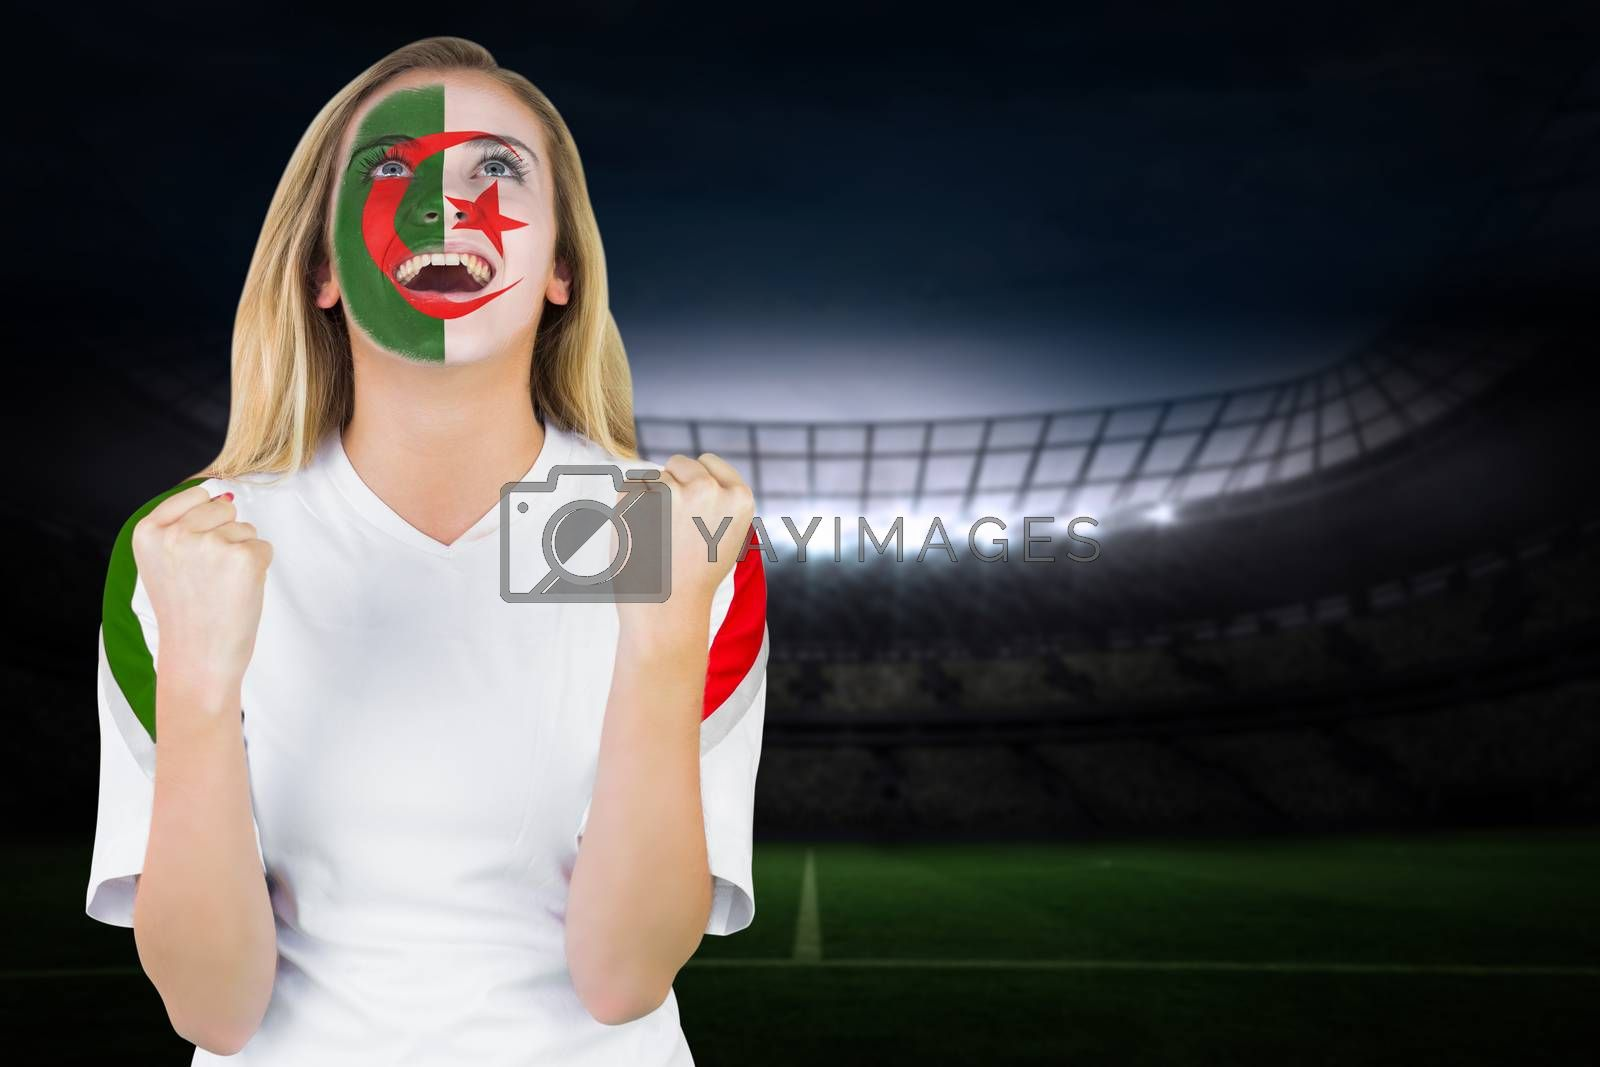 Excited iran fan in face paint cheering by Wavebreakmedia